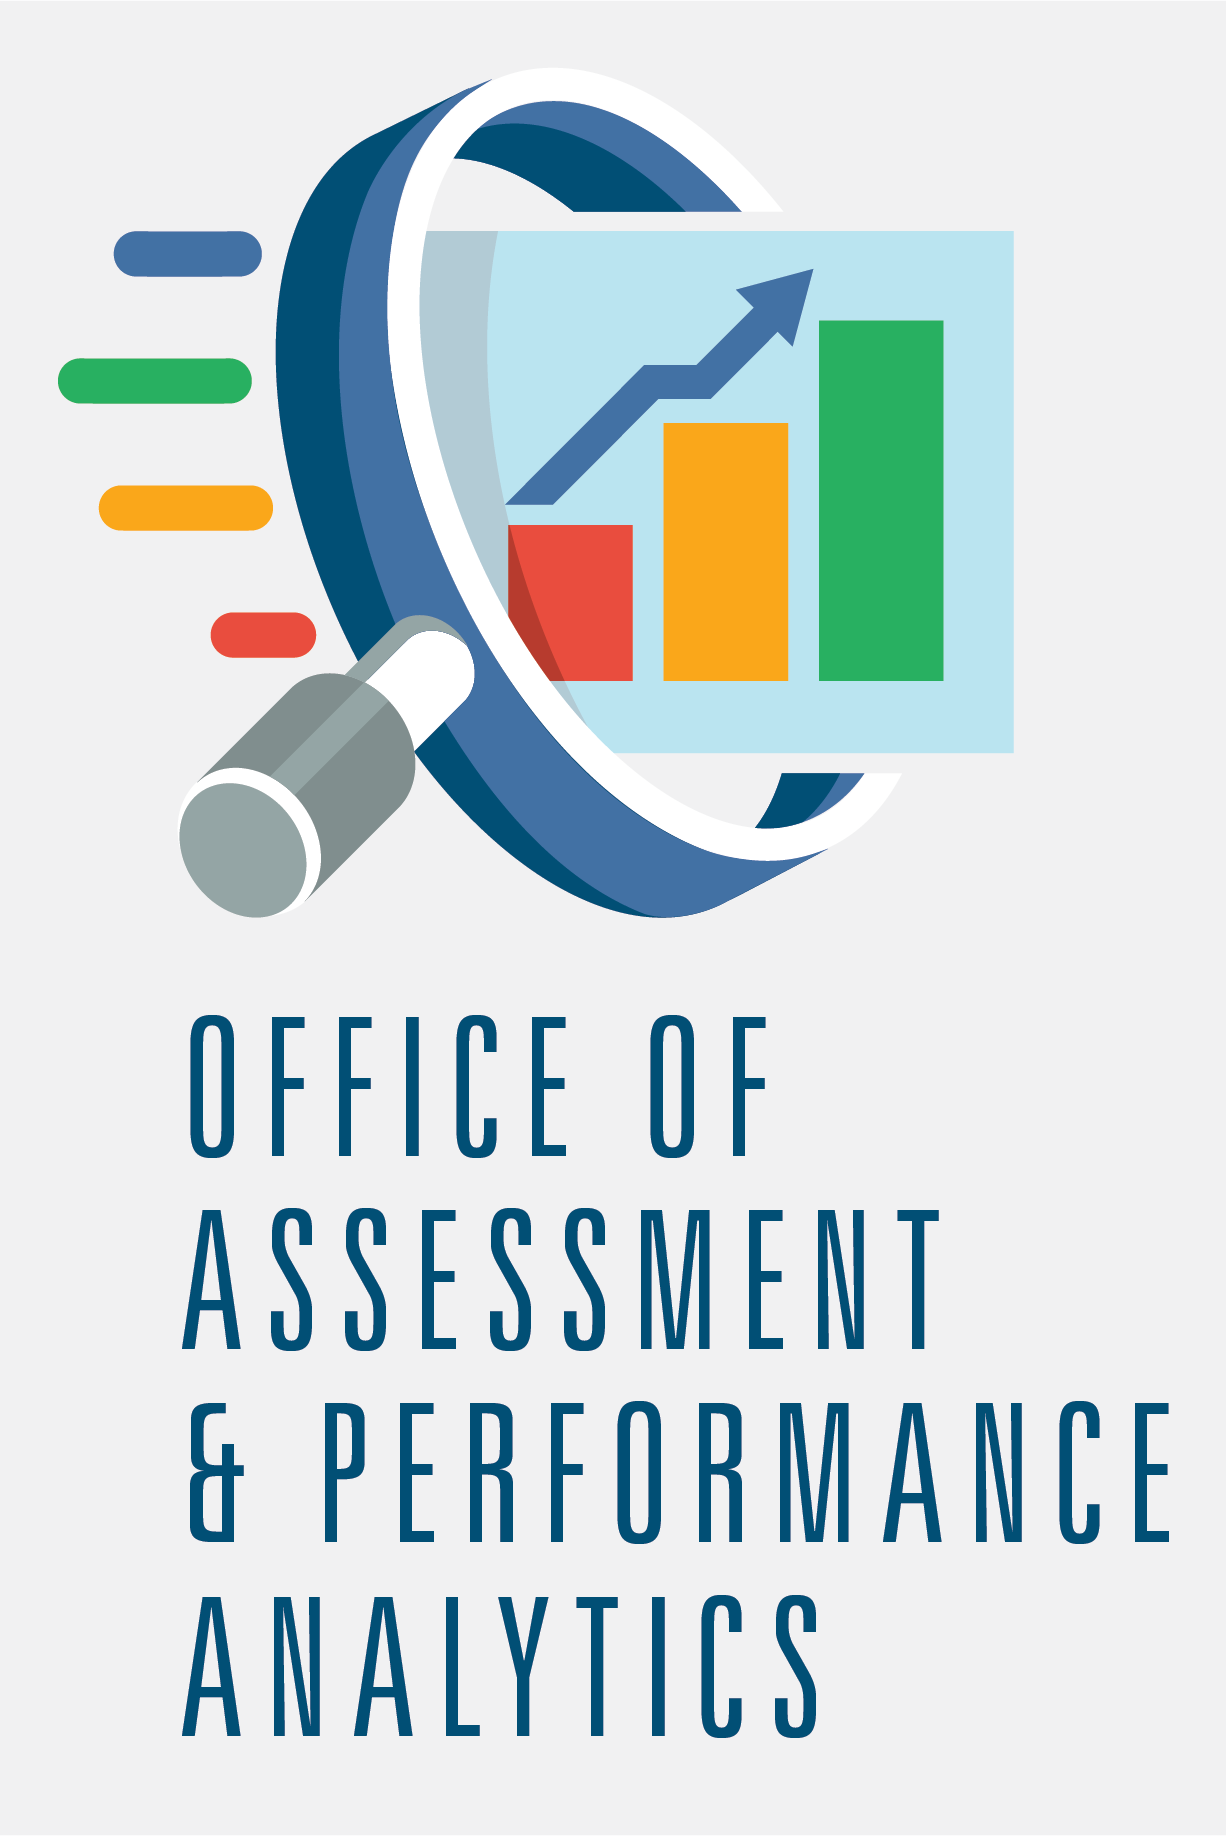 Office of Assessment & Performance Analytics